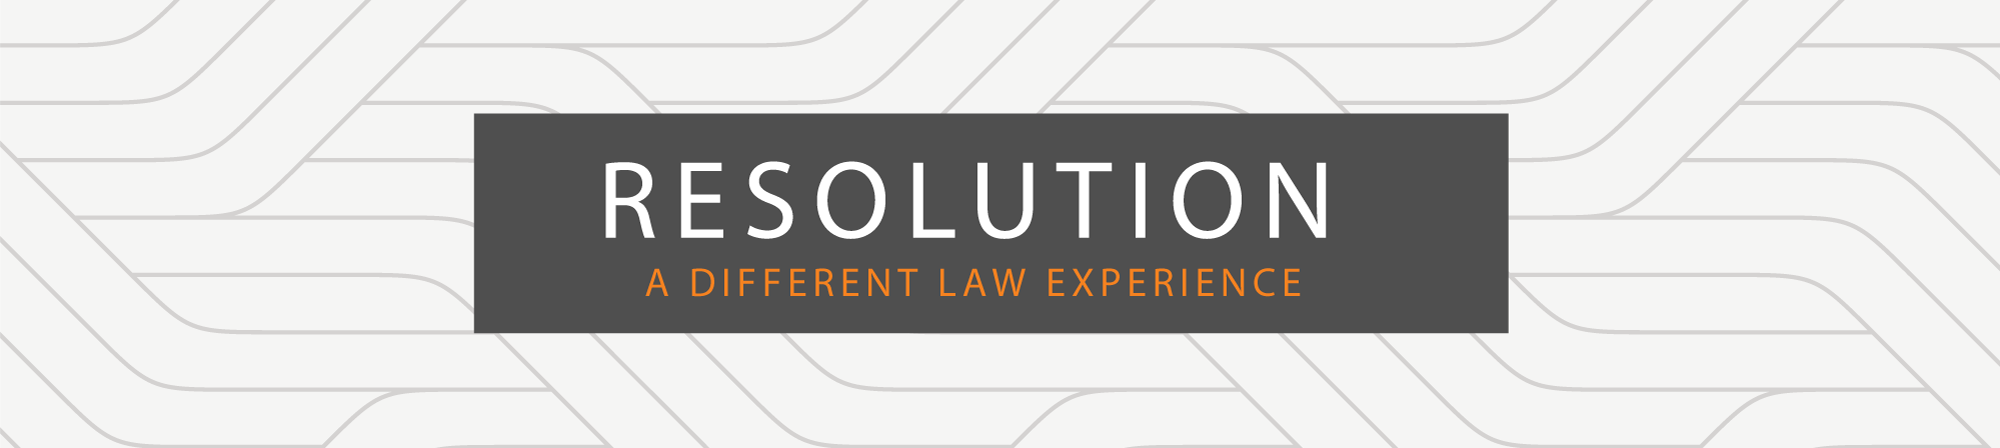 Resolution: A Different Law Experience